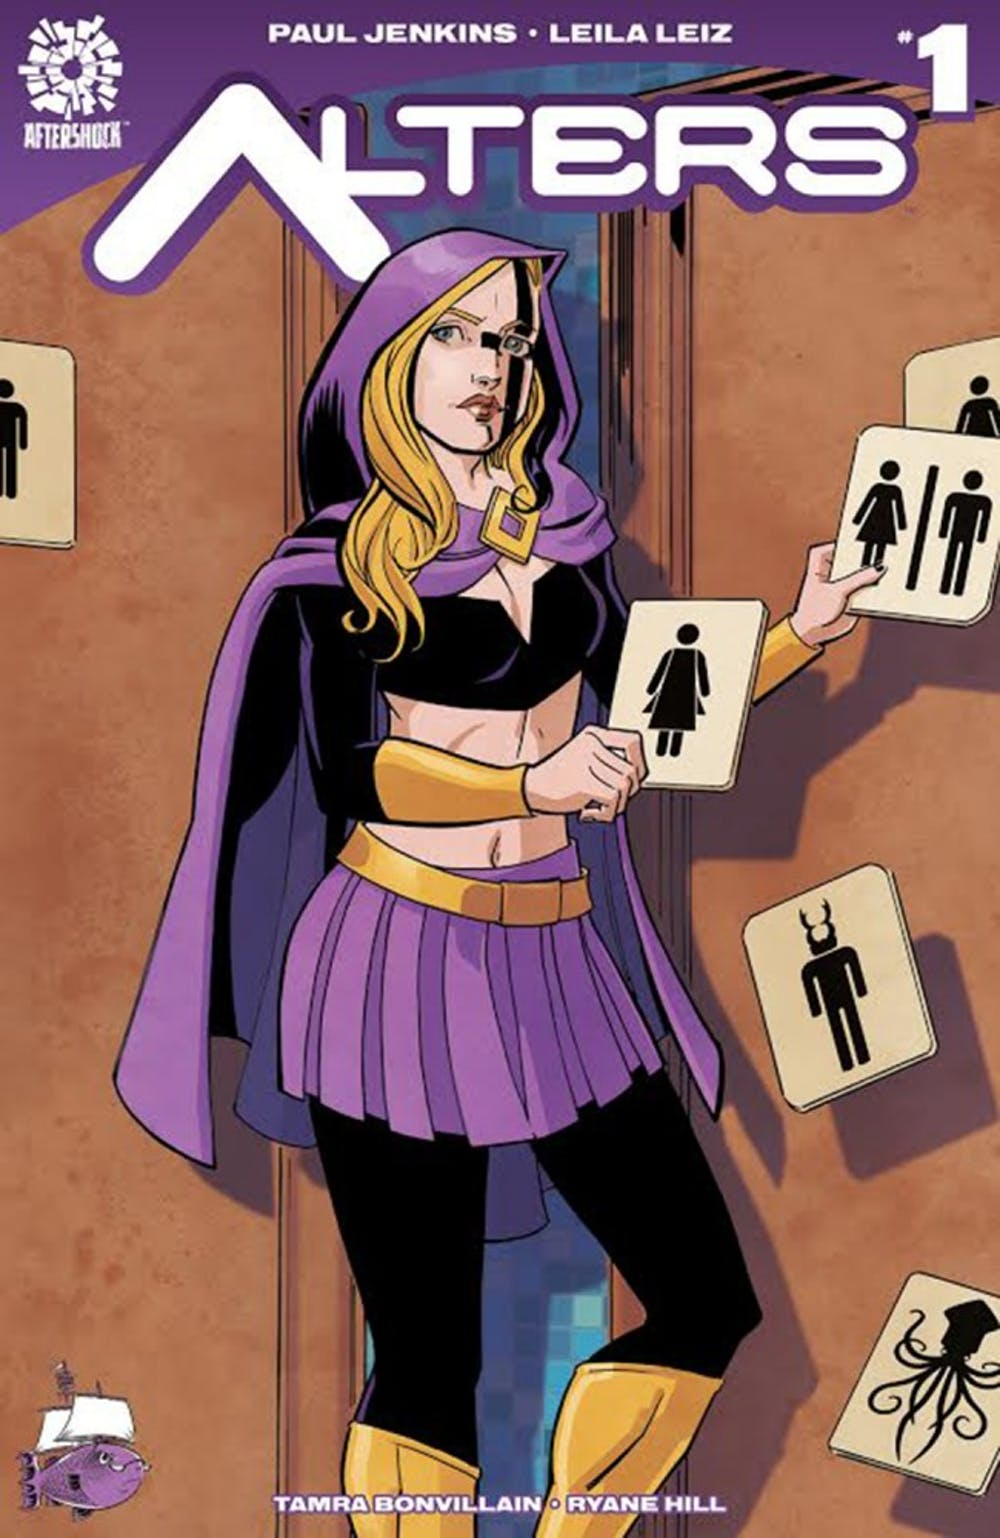 """<p>A book store in Winston Salem commissioned a cover of """"Alters,"""" which features a transgender superhero as the protagonist, mocking House Bill 2.&nbsp;Photo courtesy of Bret Parks.&nbsp;</p>"""